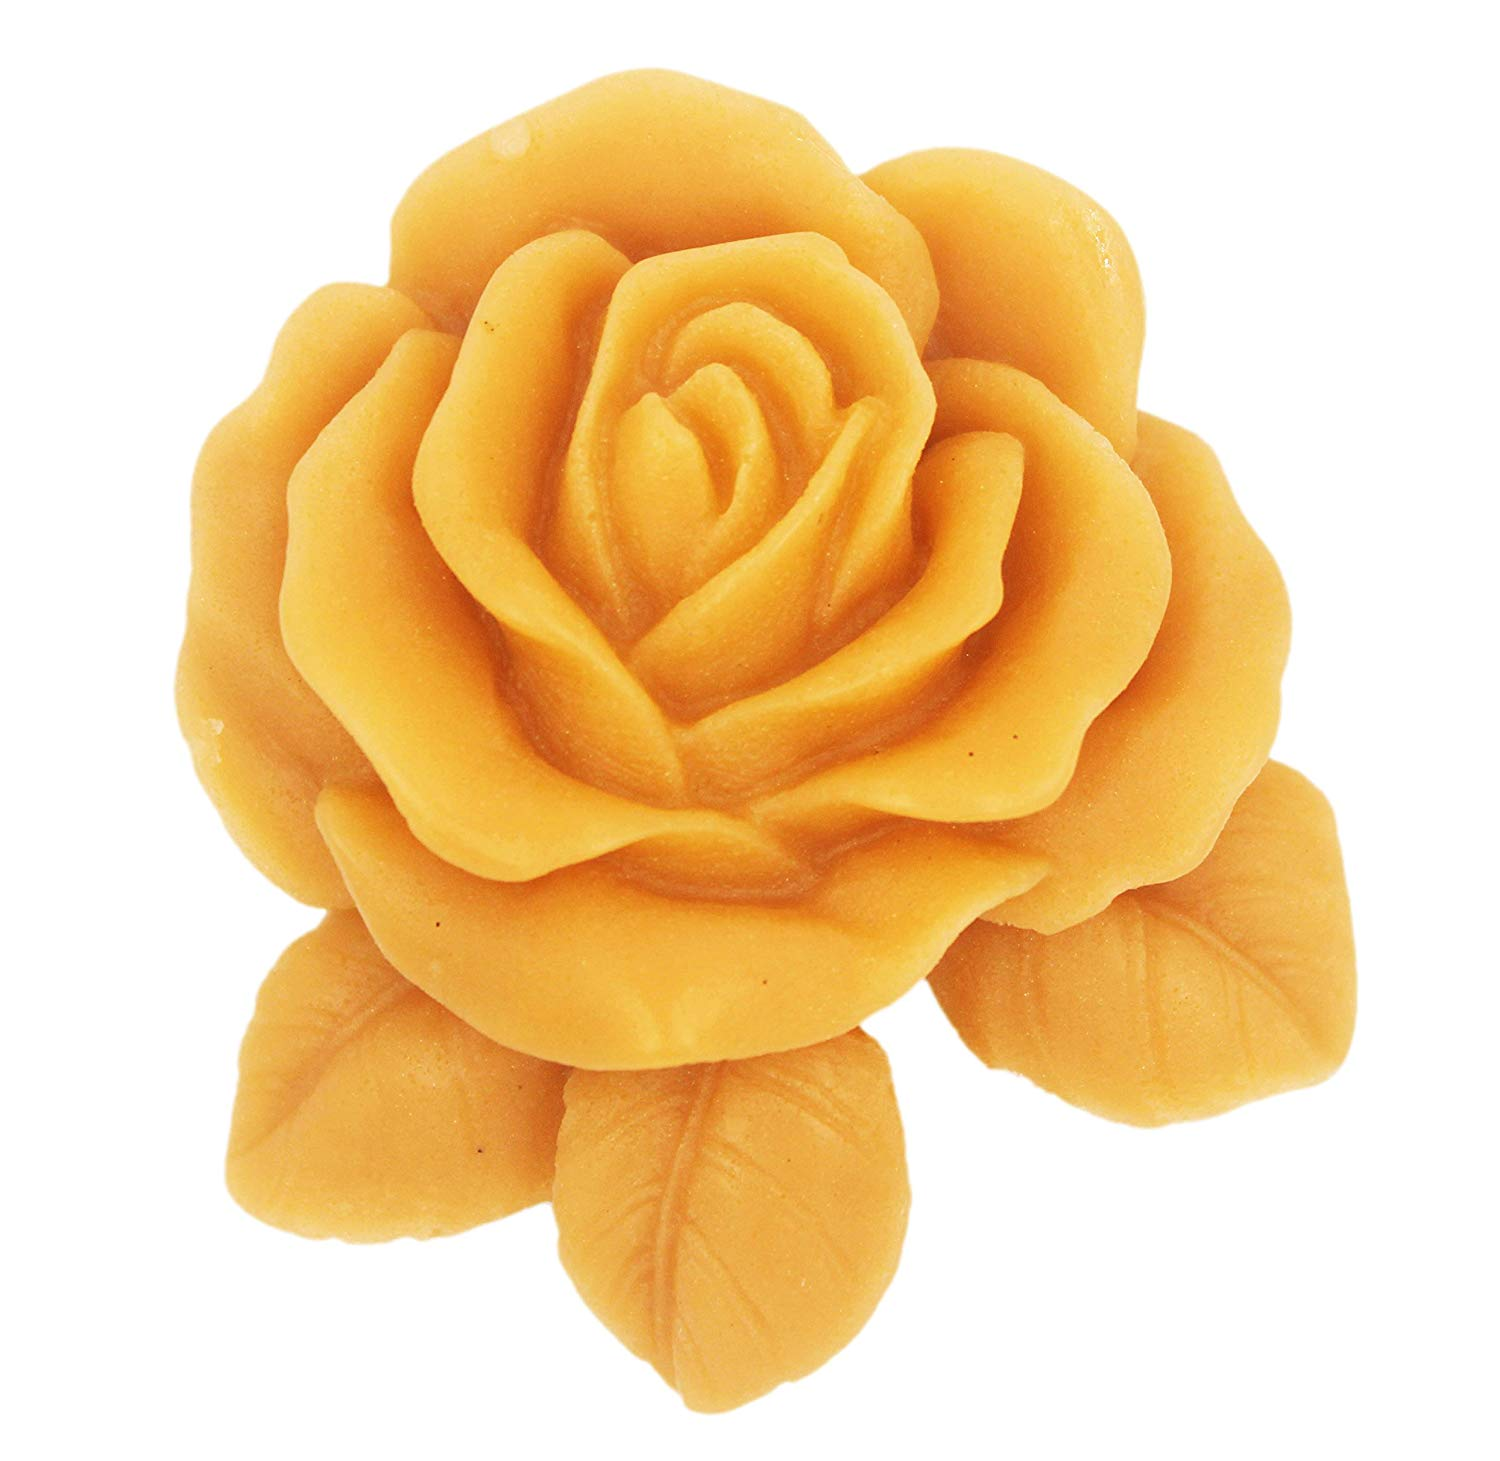 Longzang Silicone Soap Molds Shapes Rose Flowers Soap Mold Silicone Soap Molds (S556)